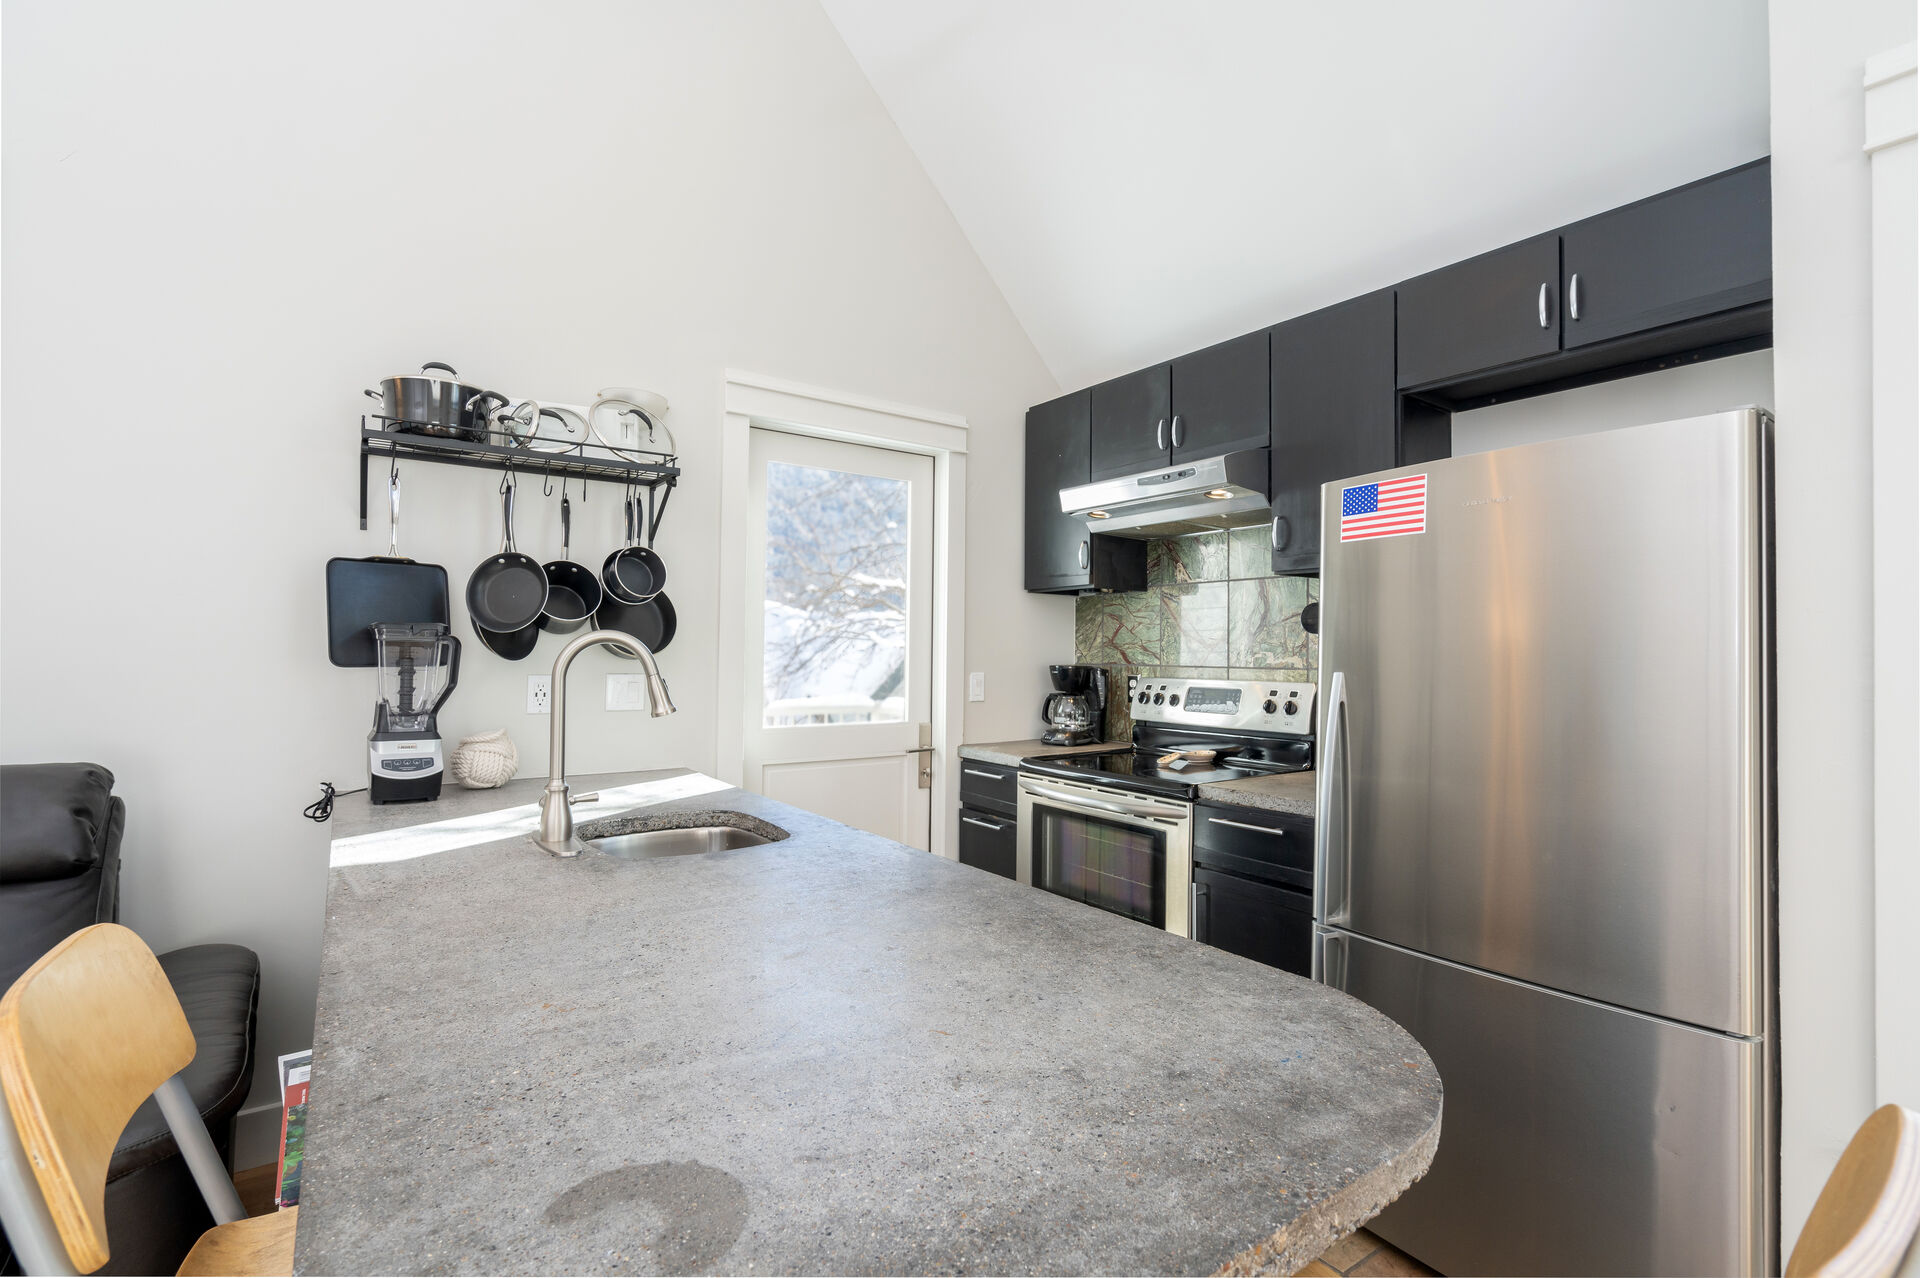 Fully equipped kitchen and seats for 2 with bar stools